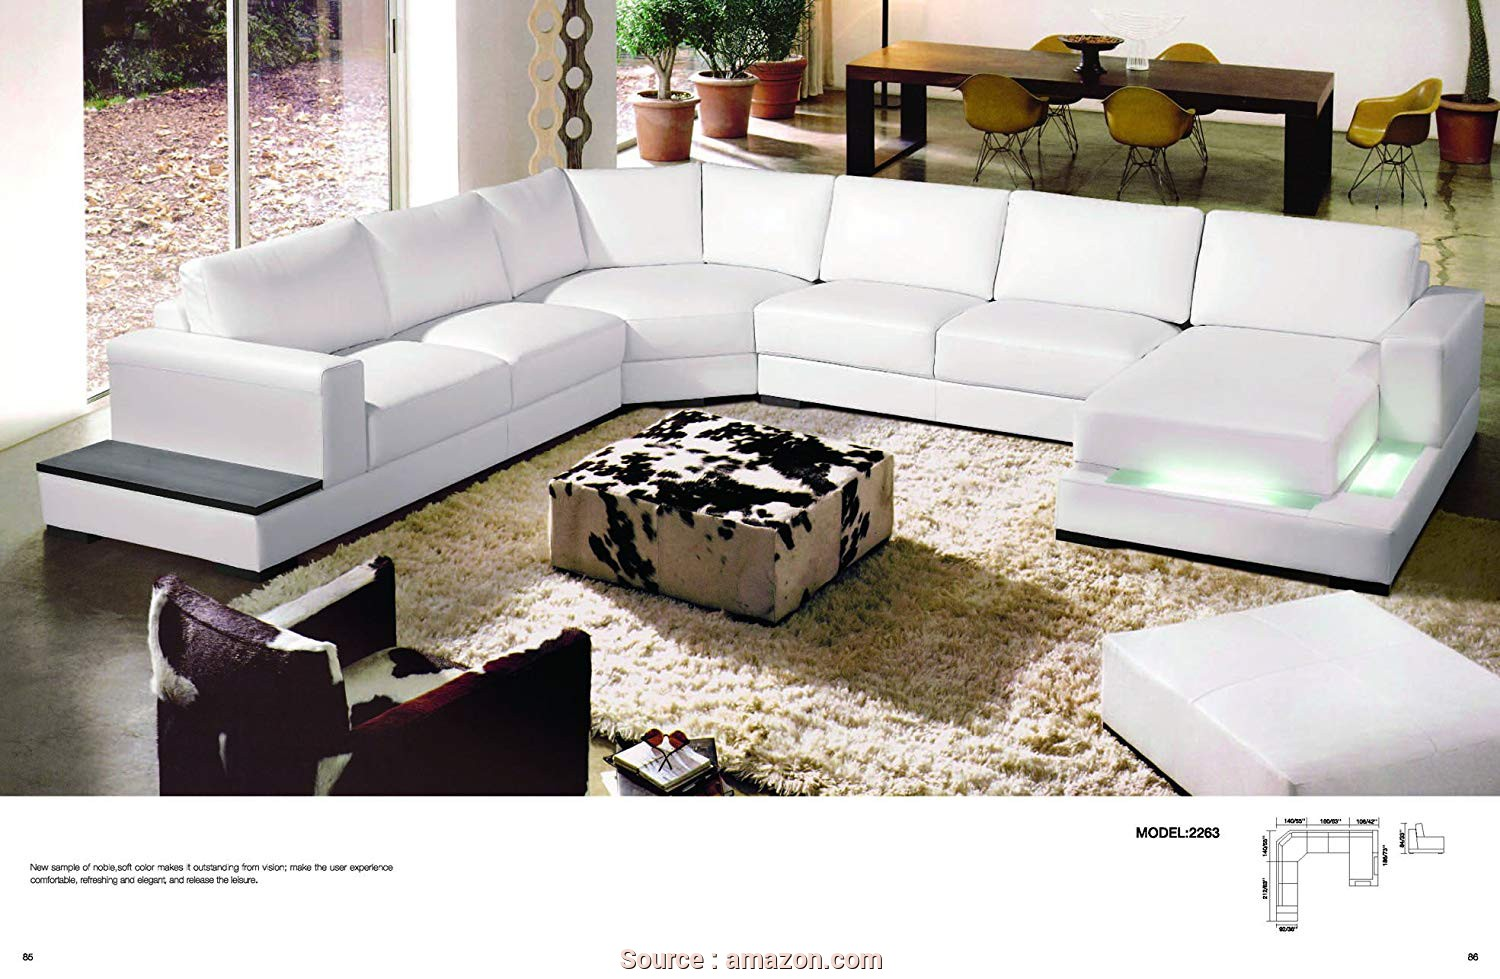 Amazon Divani Country, Casuale Amazon.Com: My Aashis Divani Casa 2263, Modern Contemporary Leather Sectional Sofa White Color Light: Kitchen & Dining